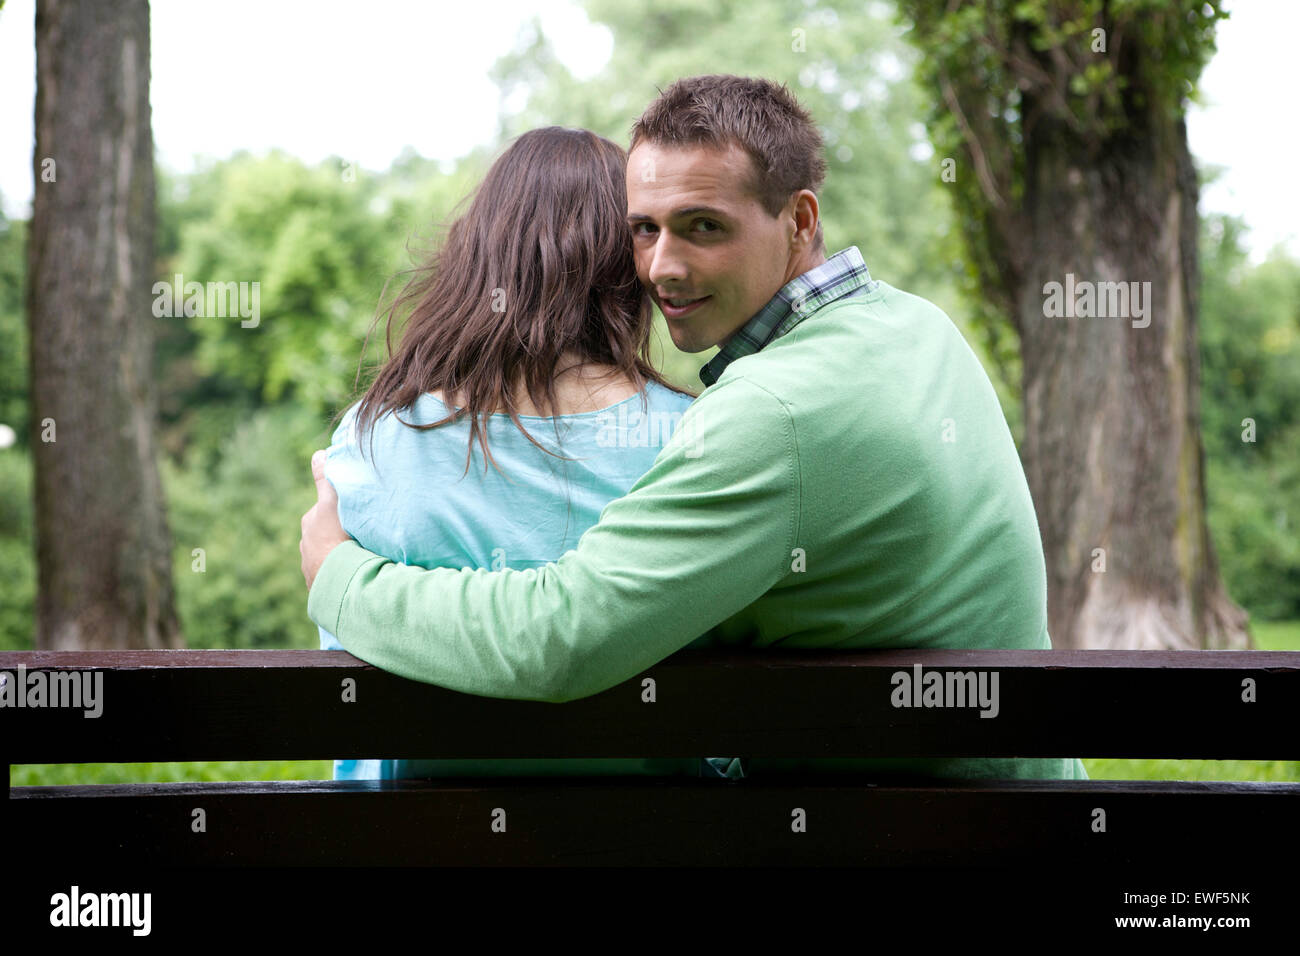 Portrait of young man with girlfriend sitting on bench - Stock Image